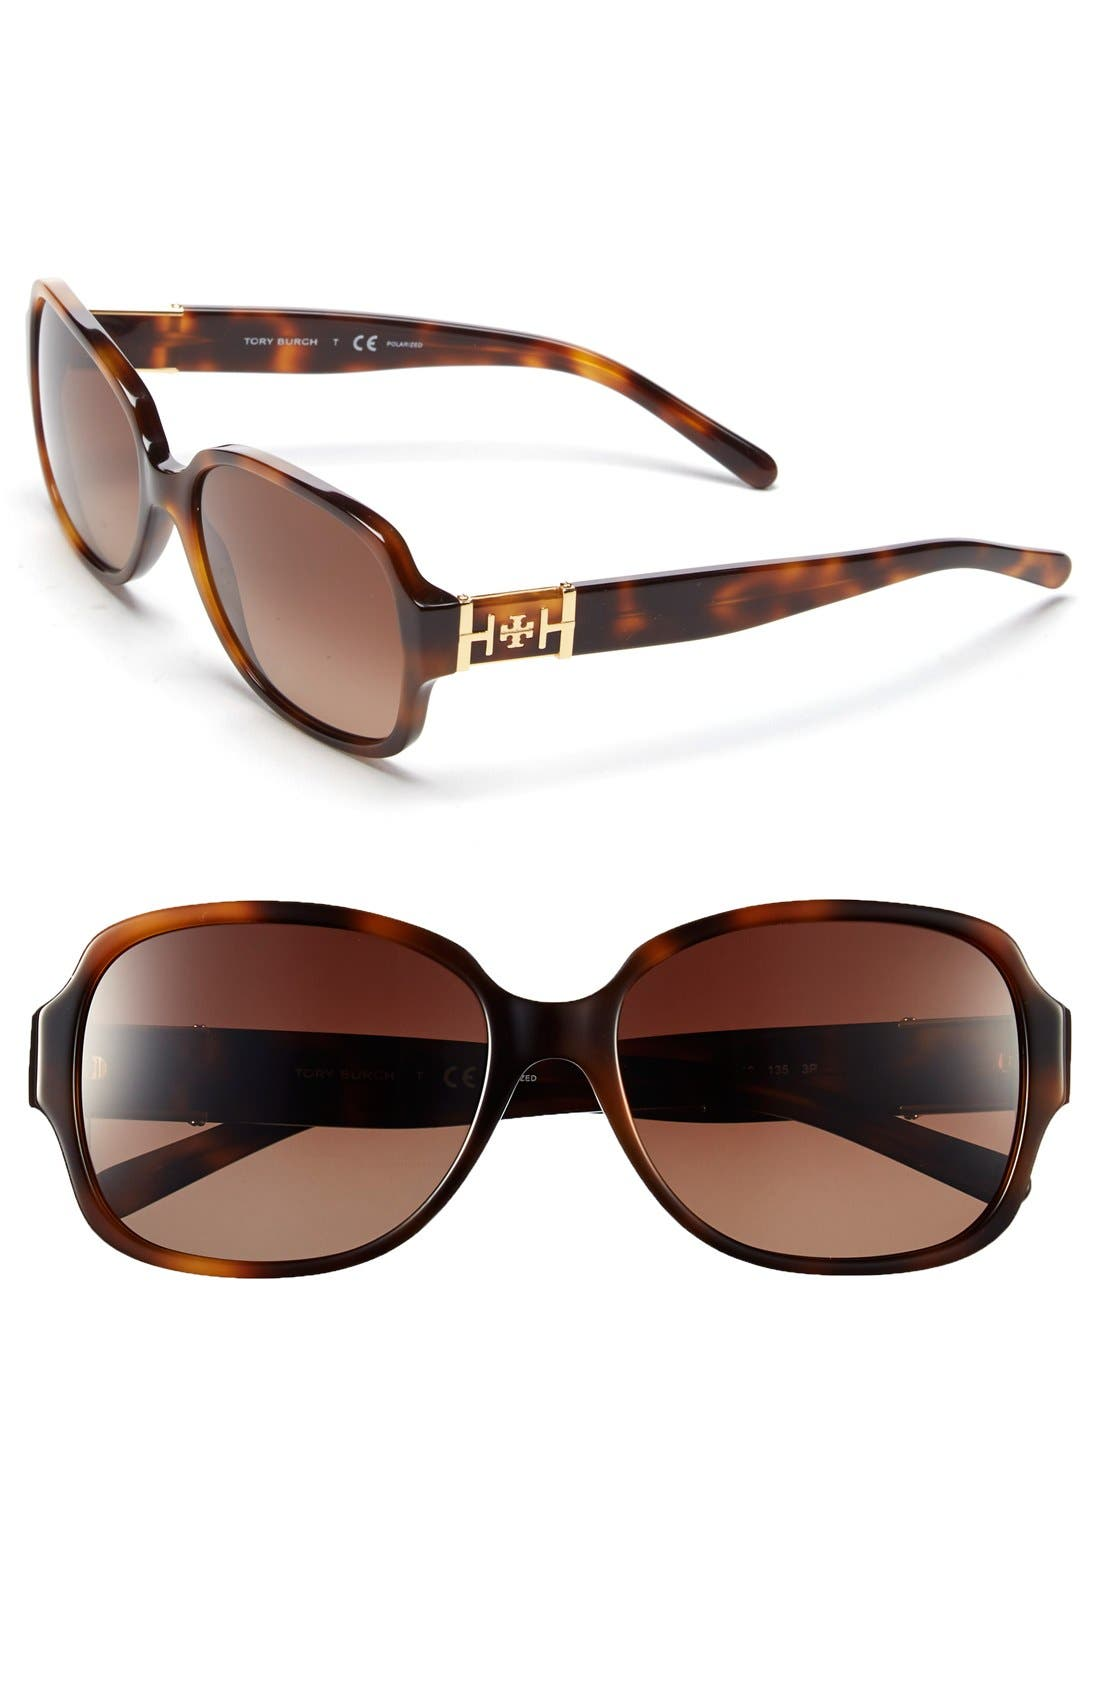 Main Image - Tory Burch 57mm Polarized Sunglasses (Nordstrom Exclusive)